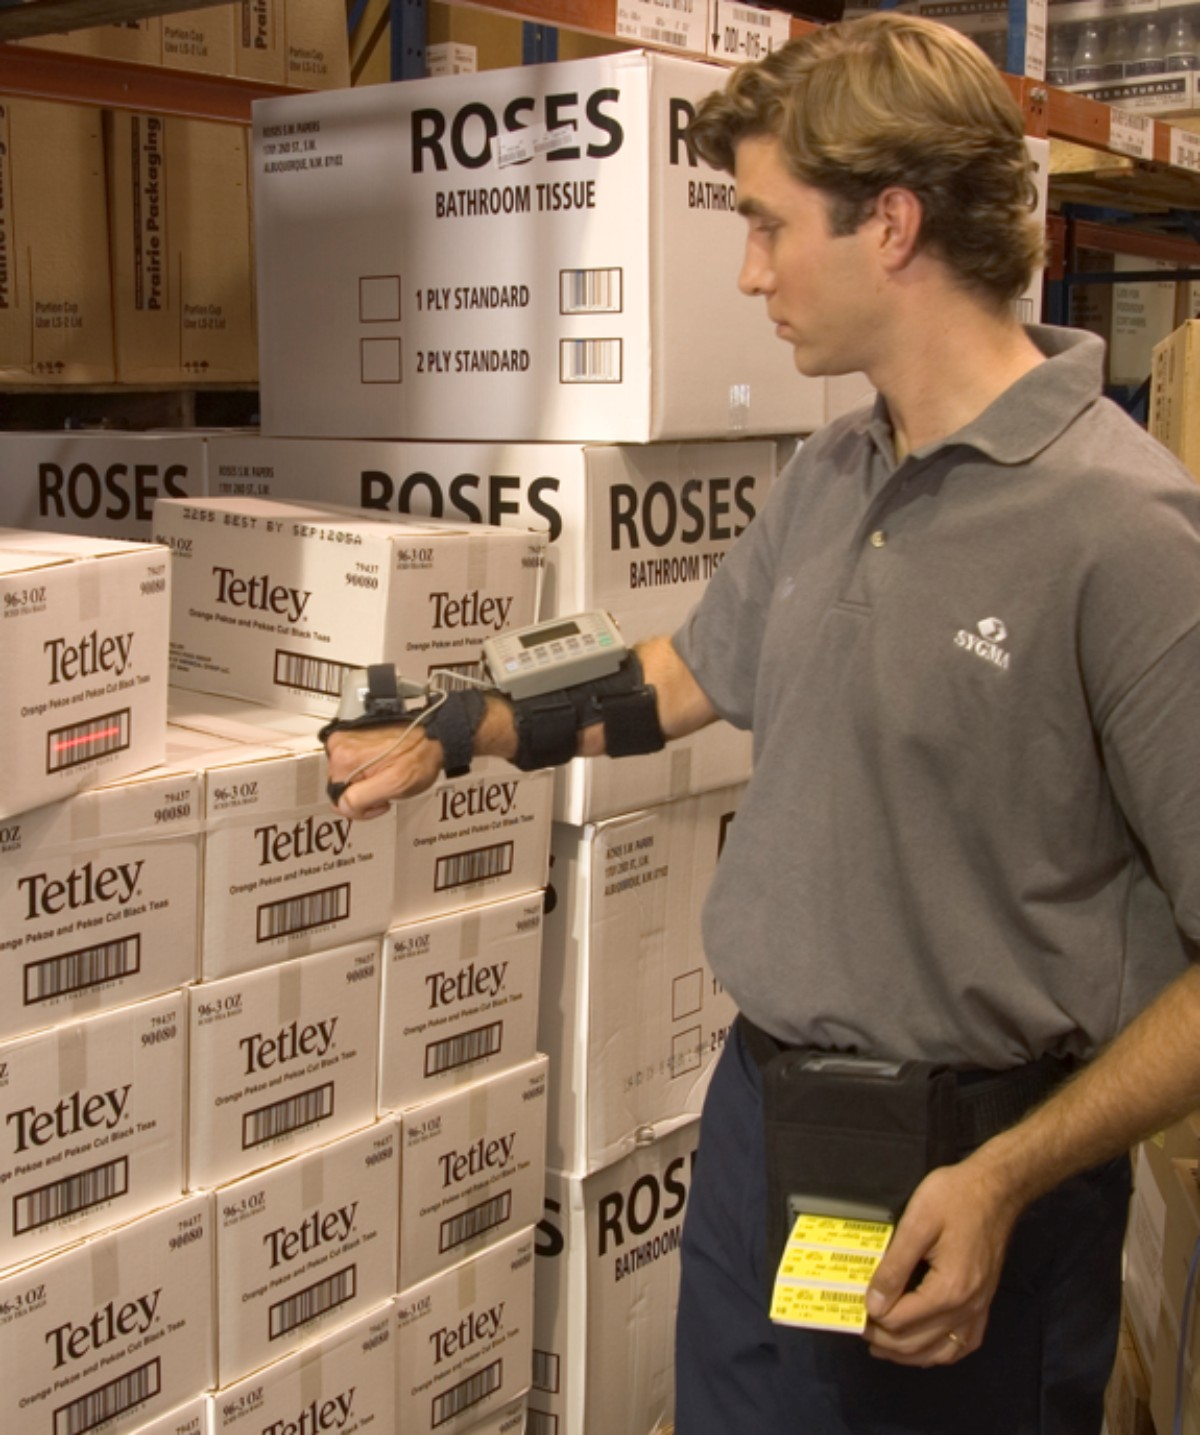 SYGMA warehouse worker inspecting boxes